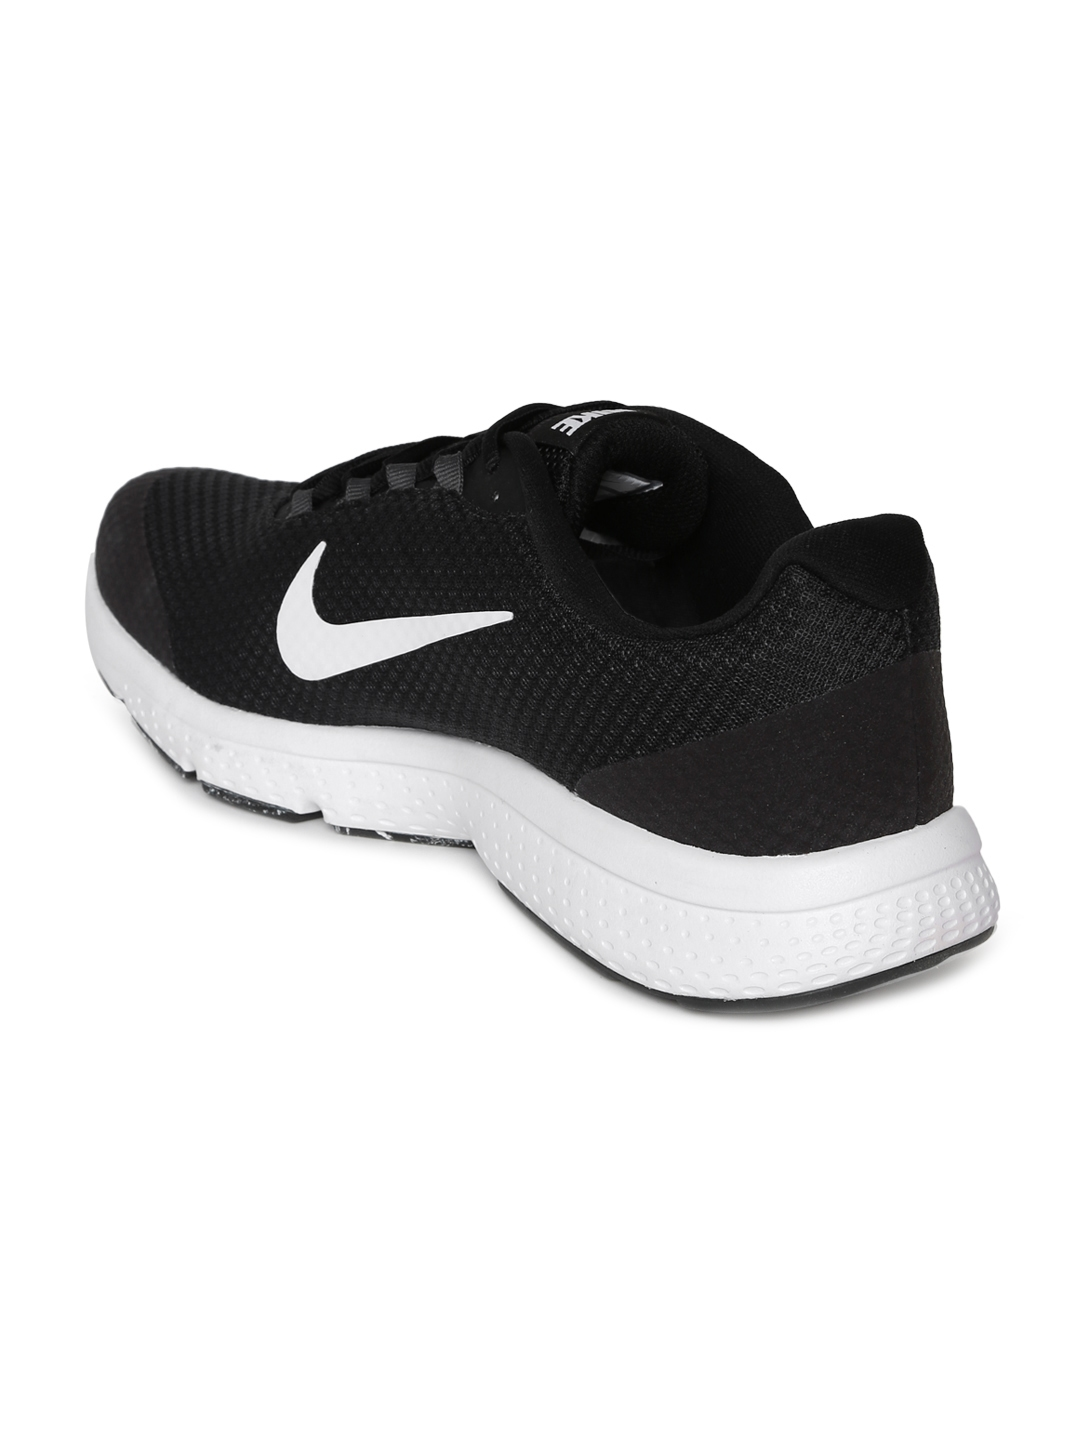 6024482d99c9a Buy Nike Men Black Run All Day Running Shoe - Sports Shoes for Men ...